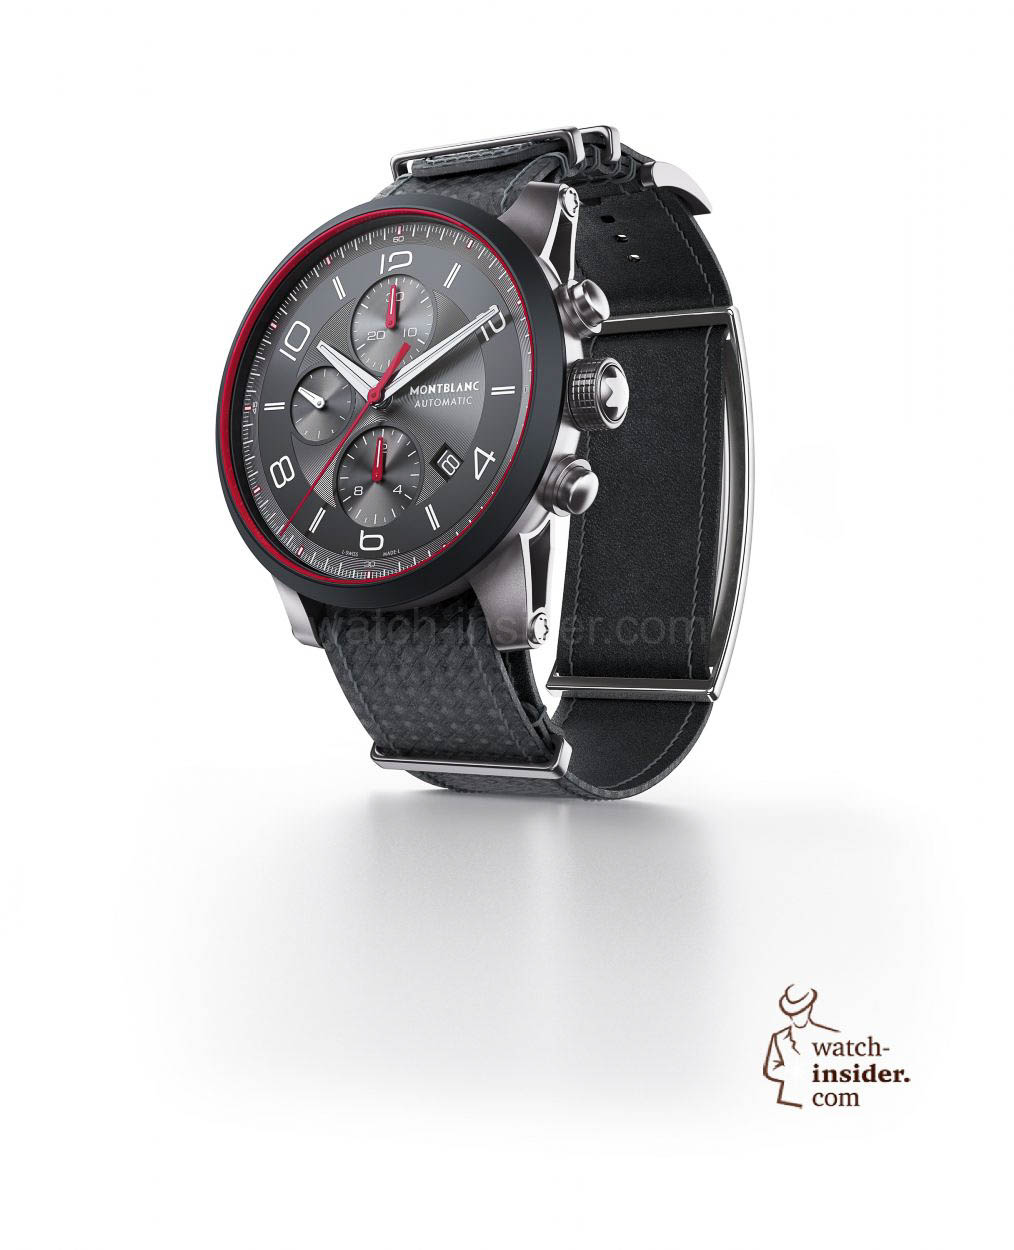 Montblanc goes smart! Let me present you the Montblanc e ...